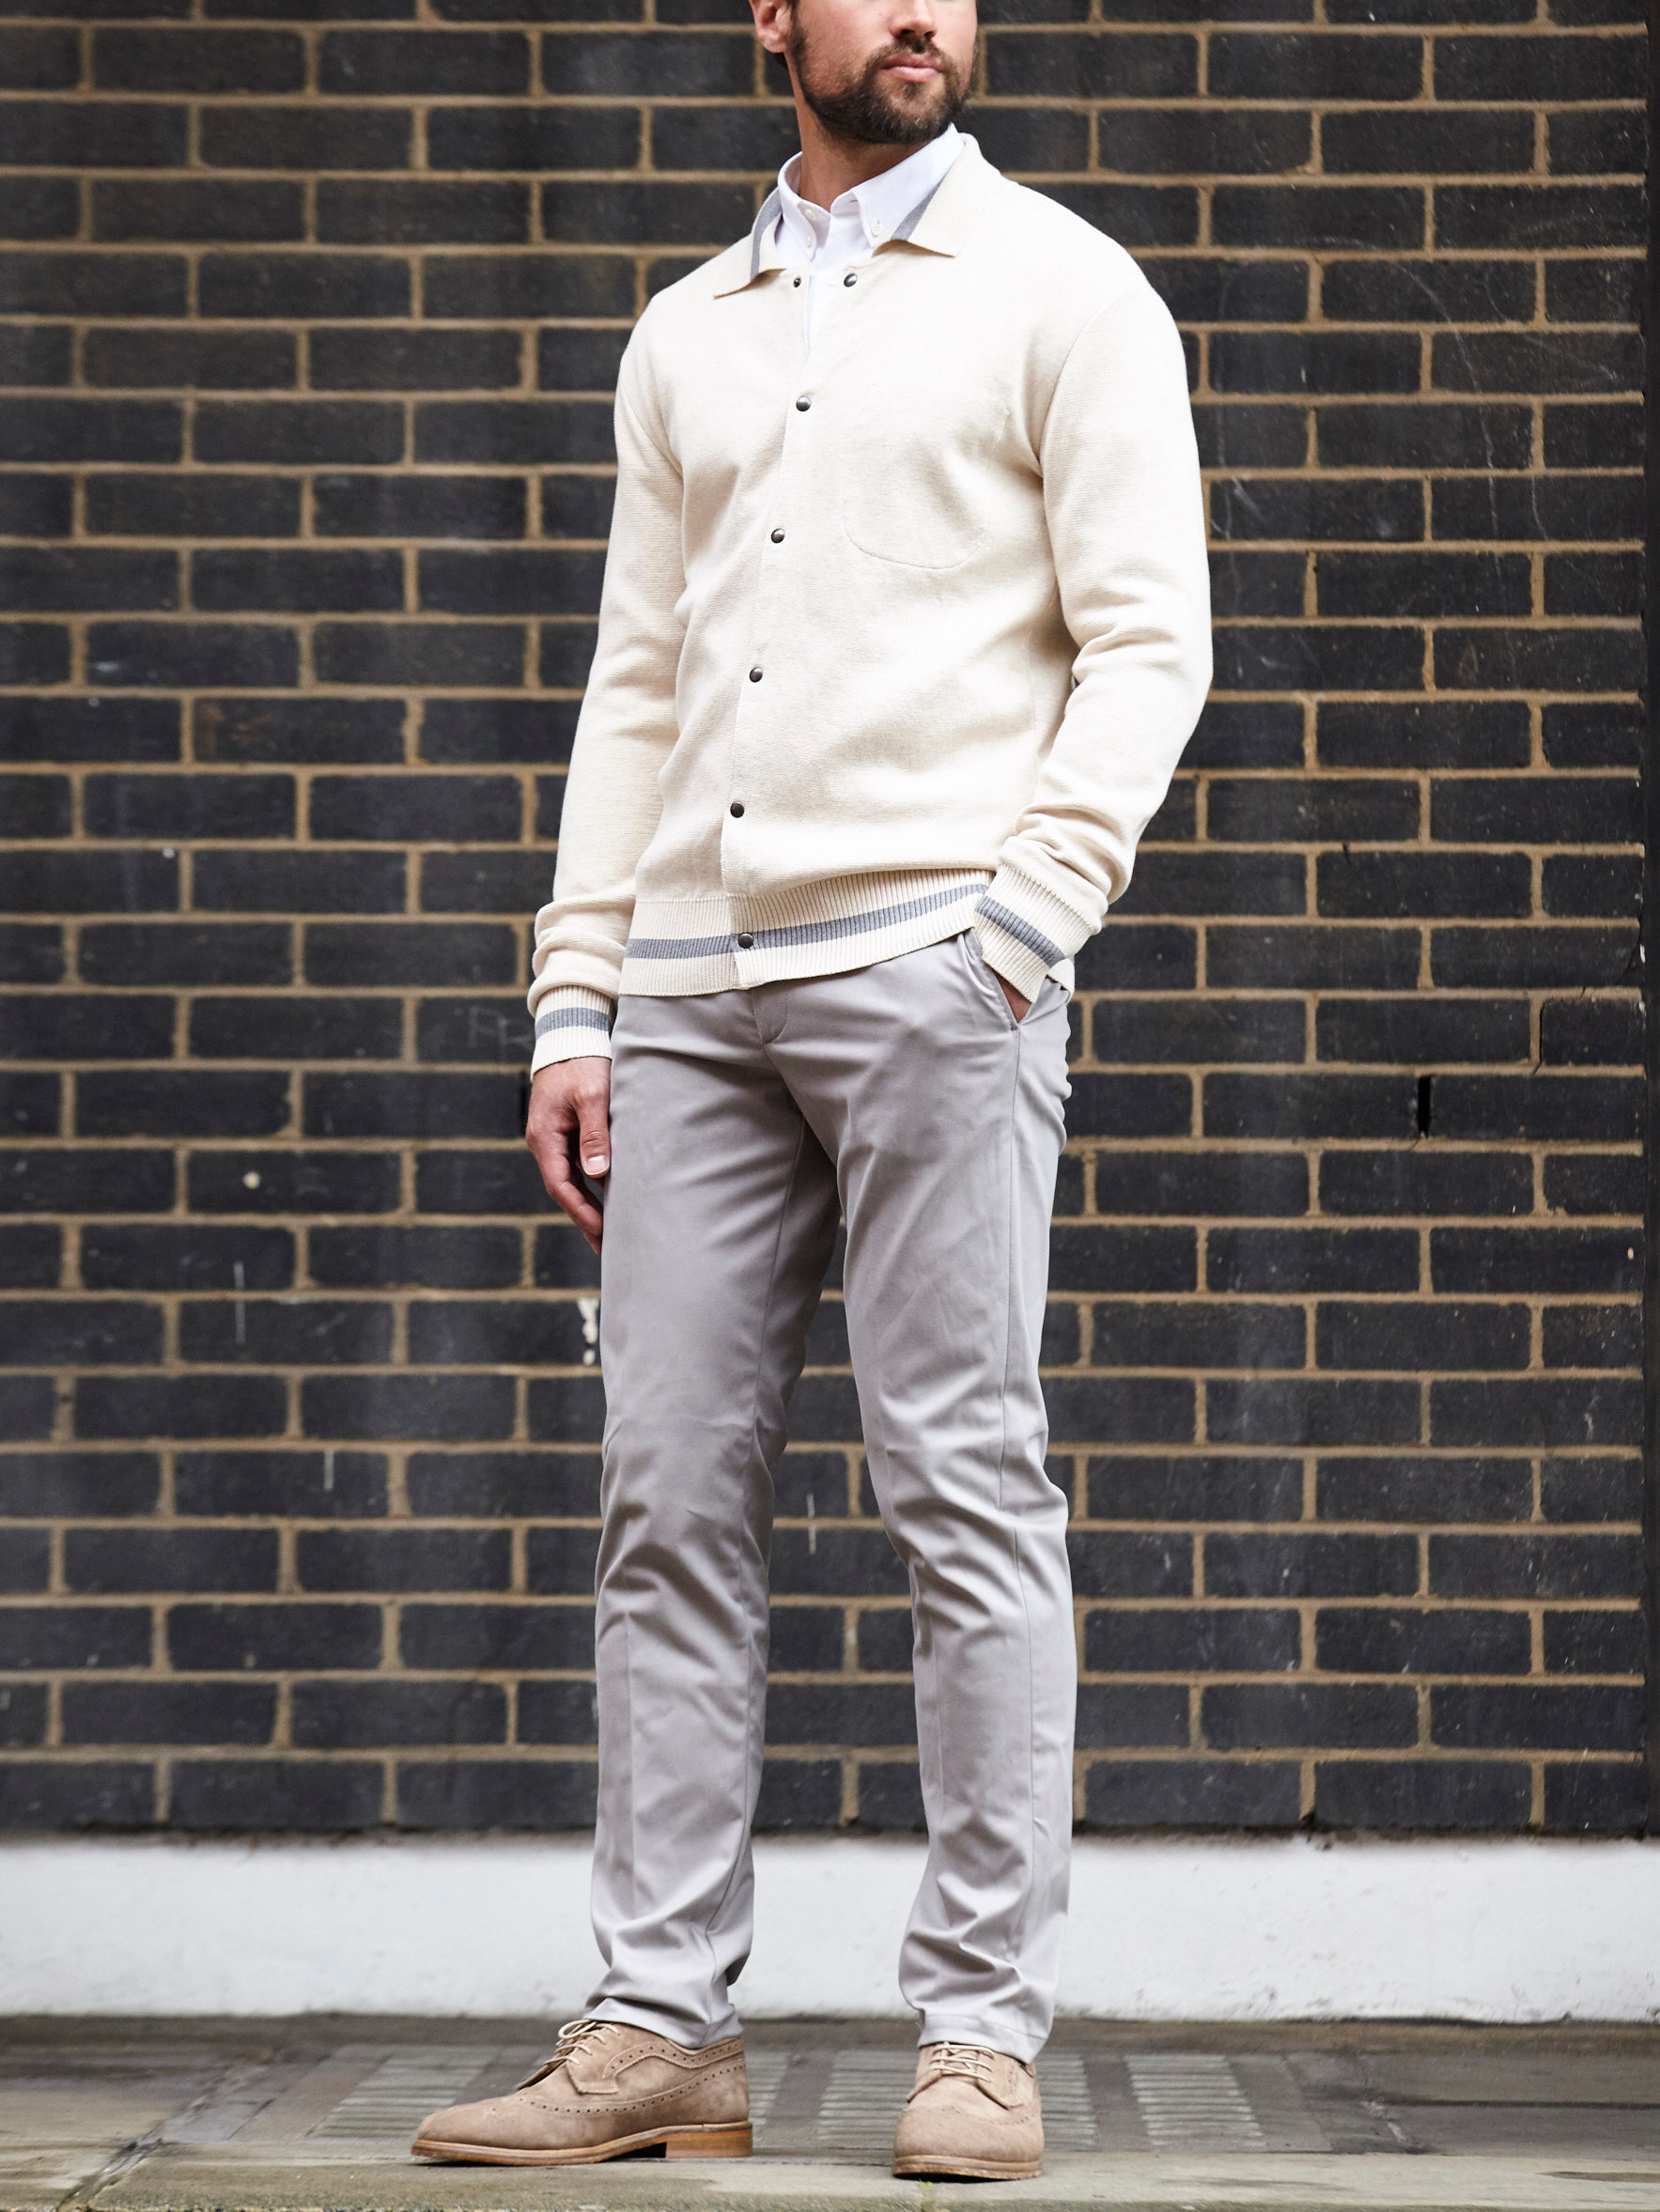 Men's outfit idea for 2021 with white casual shirt, stone chinos, suede shoes / desert shoes. Suitable for spring, summer and fall.